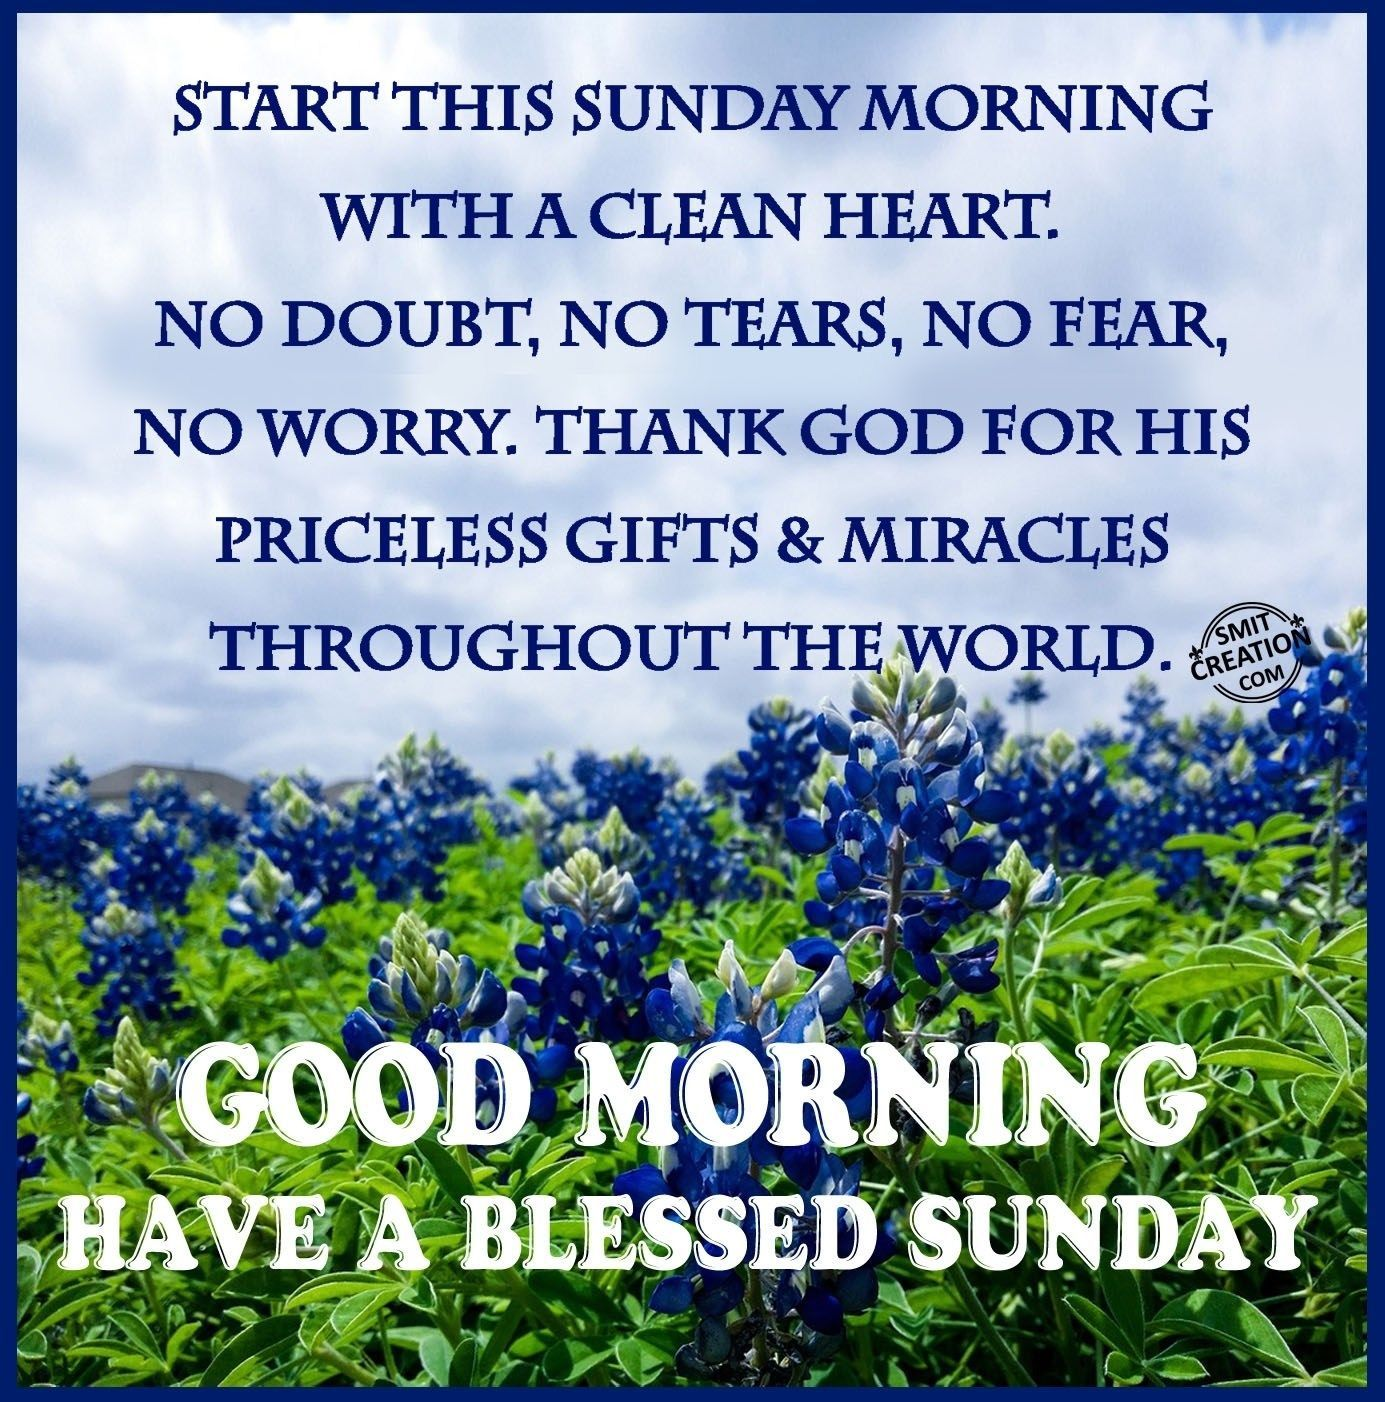 Good Morning And Happy Sunday Quotes : Good morning have a blessed sunday